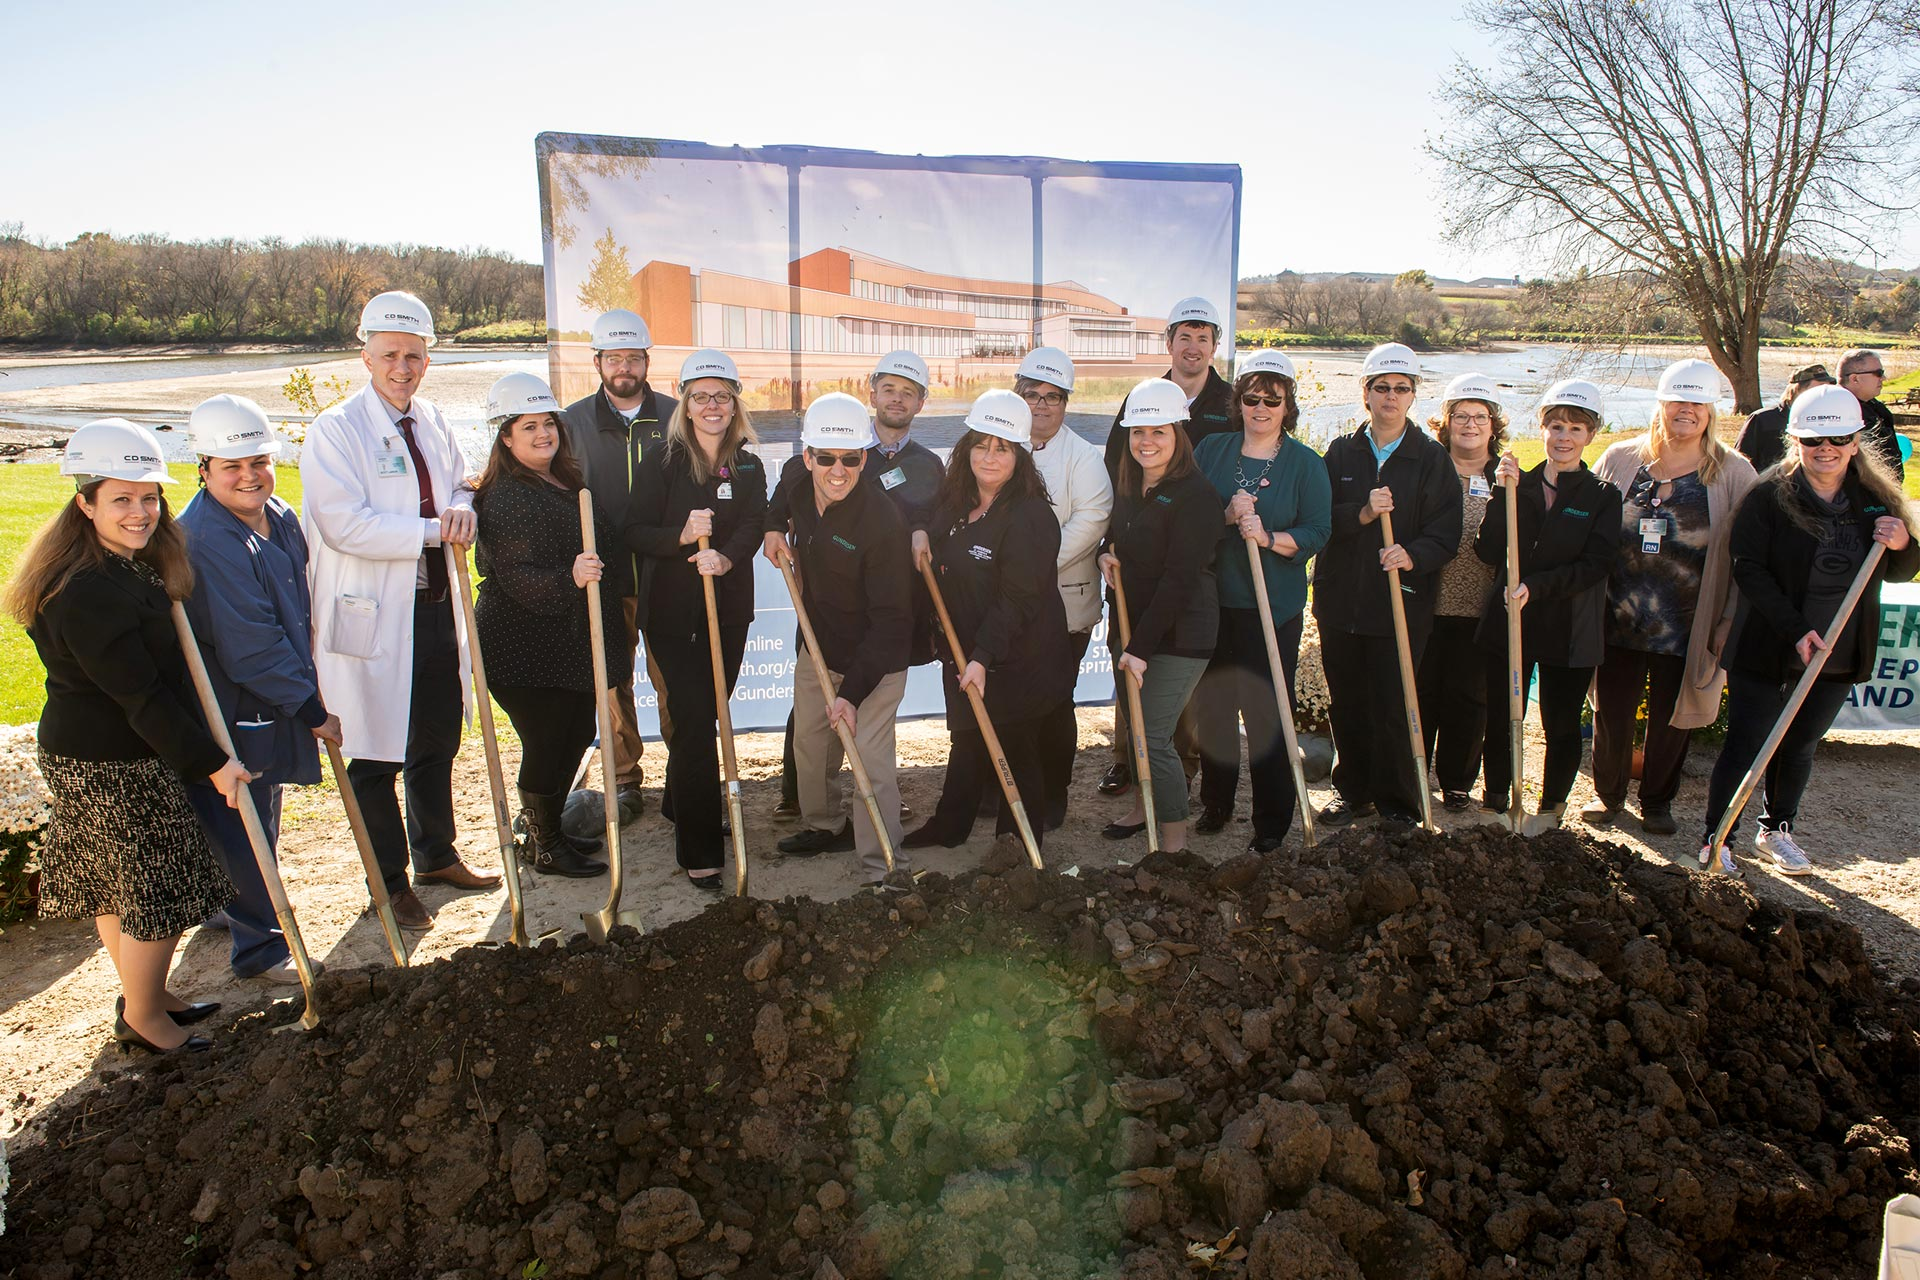 Gundersen St. Joseph's Breaks Ground